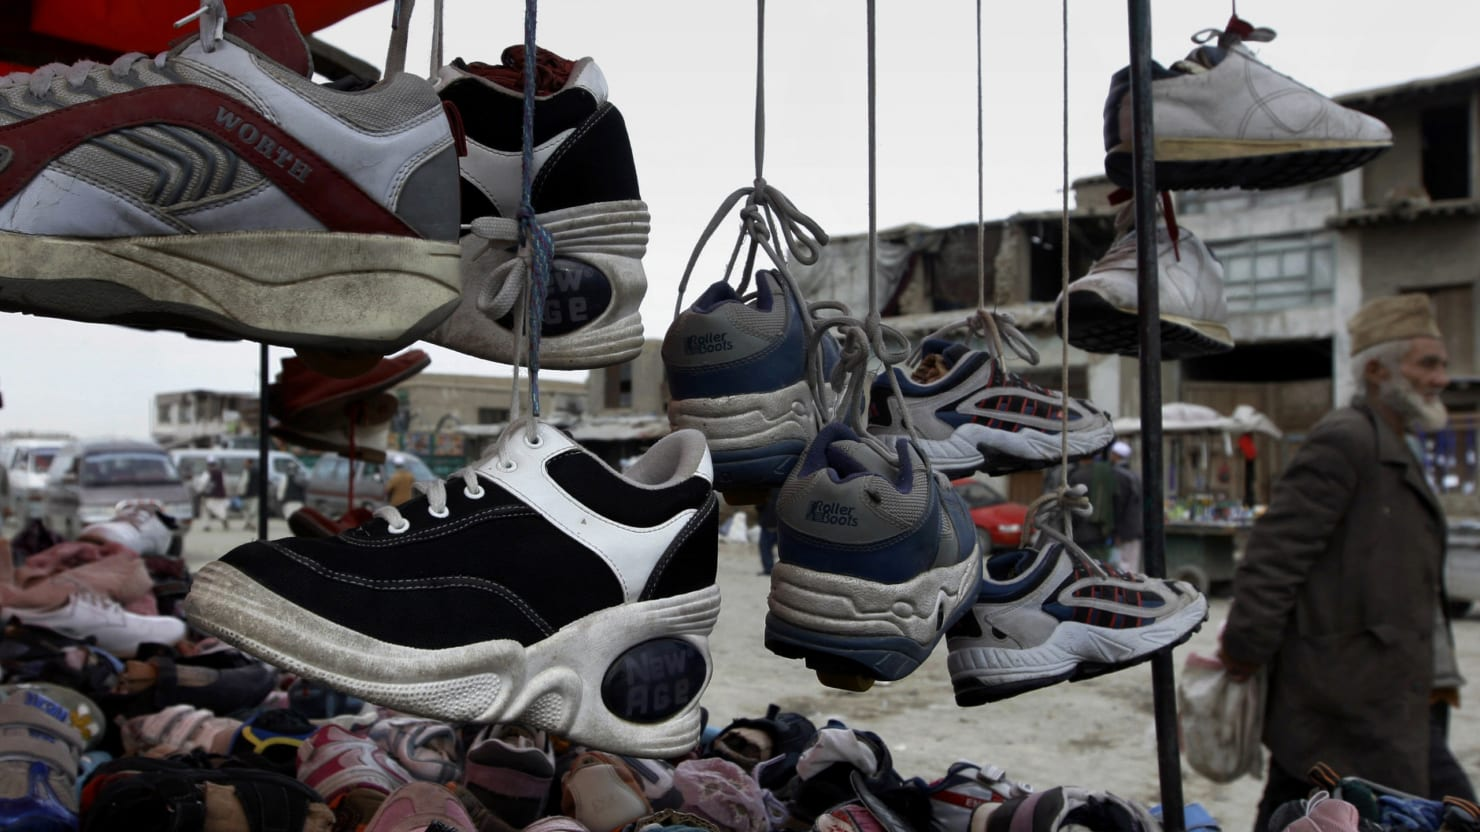 Why People Throw Shoes in Afghanistan